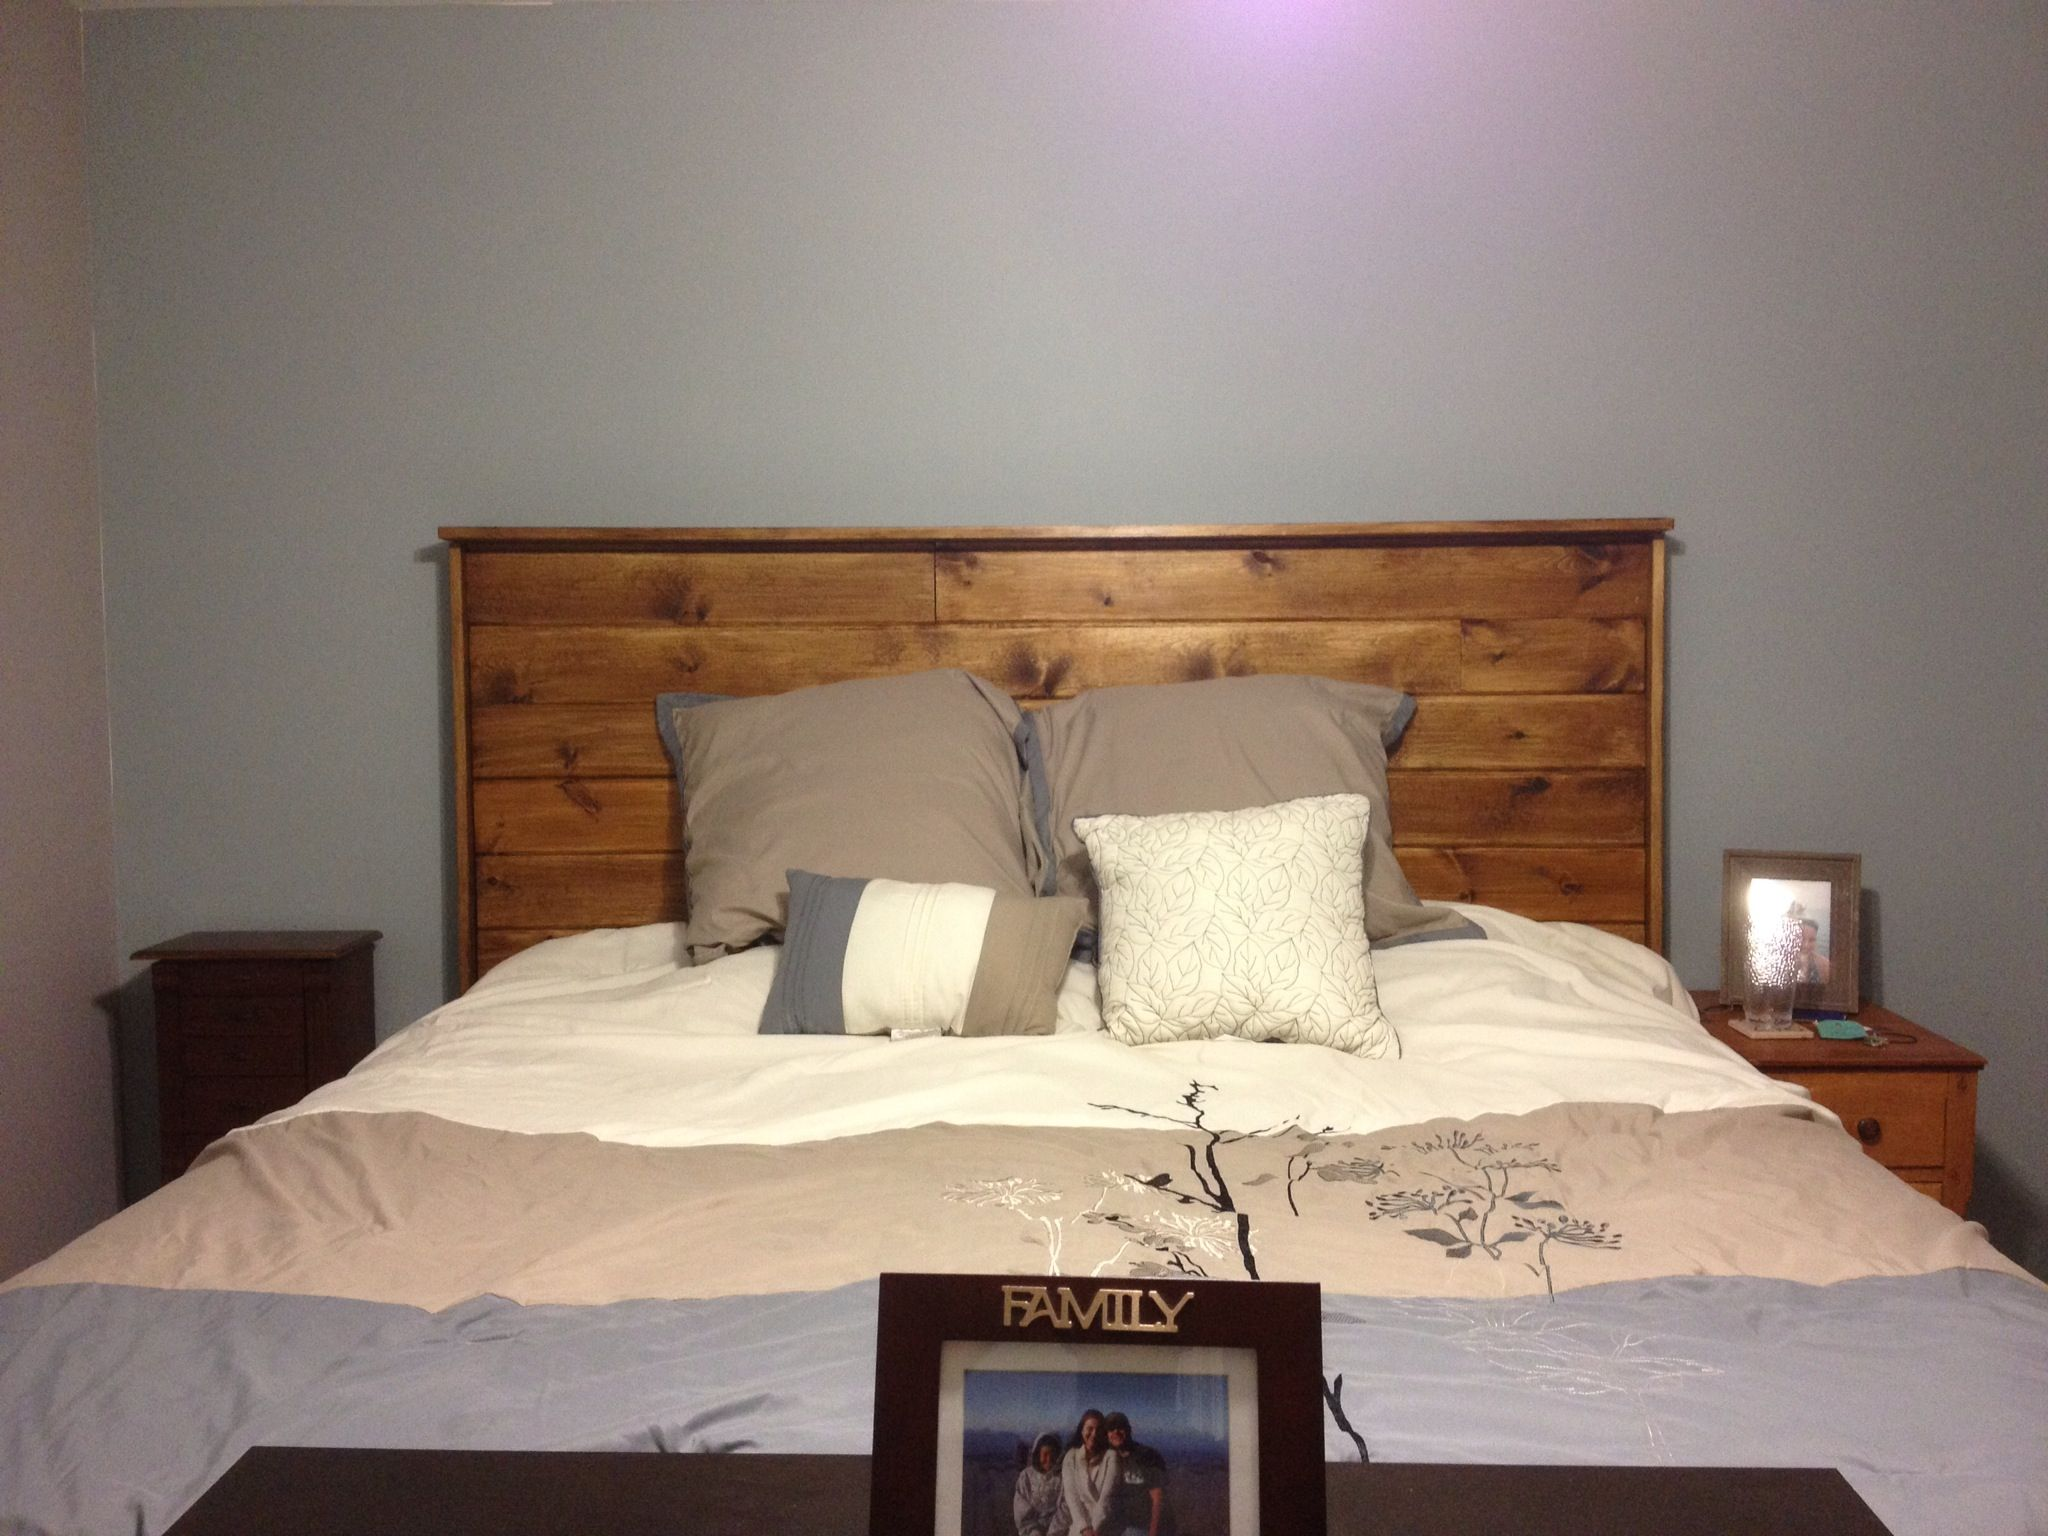 Homemade headboard for king size bed home decor for Makeshift headboard